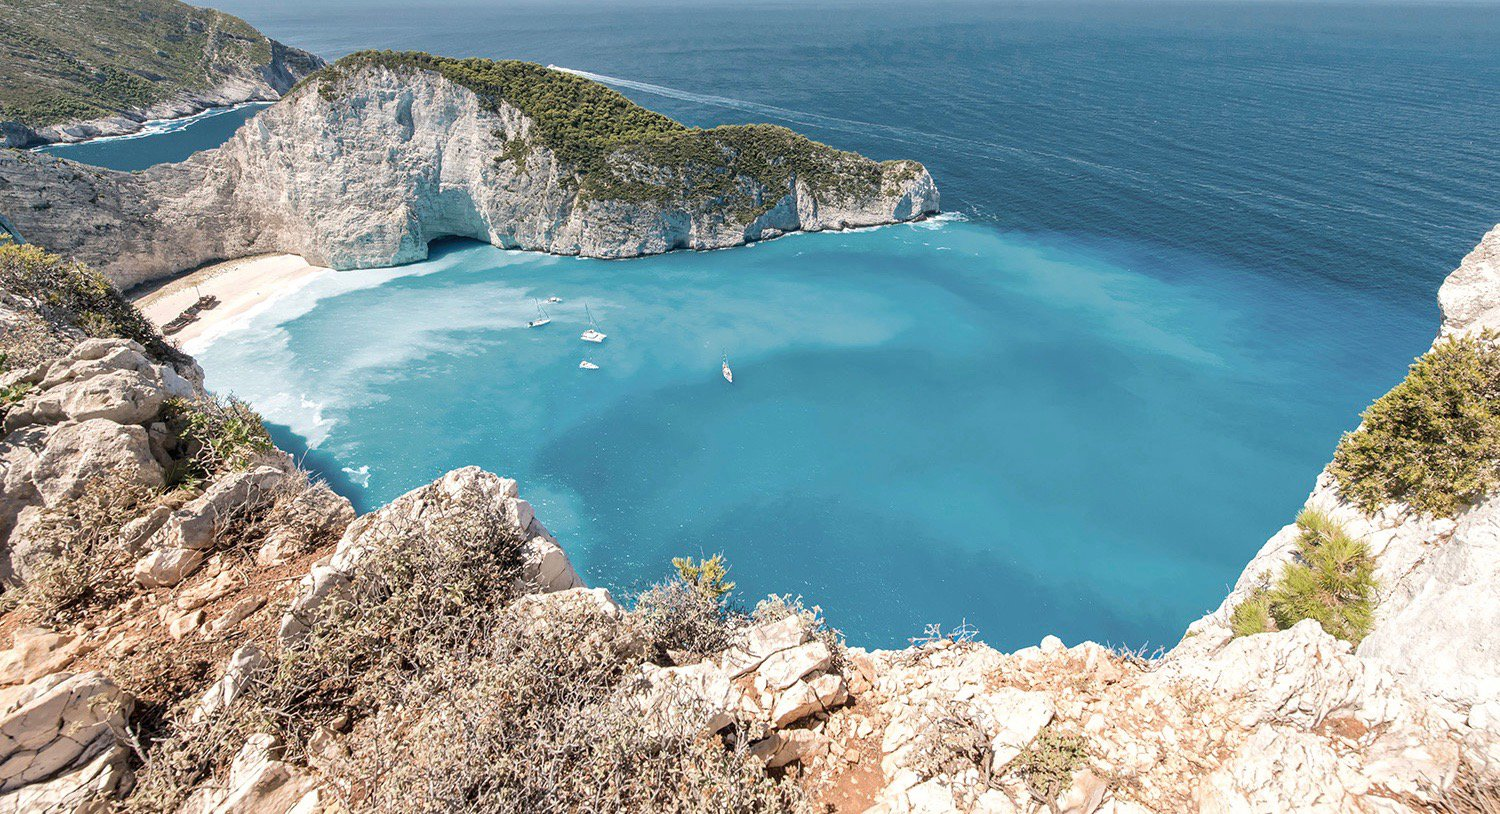 Travel Guide to Zakynthos | Author: Florian Lieke